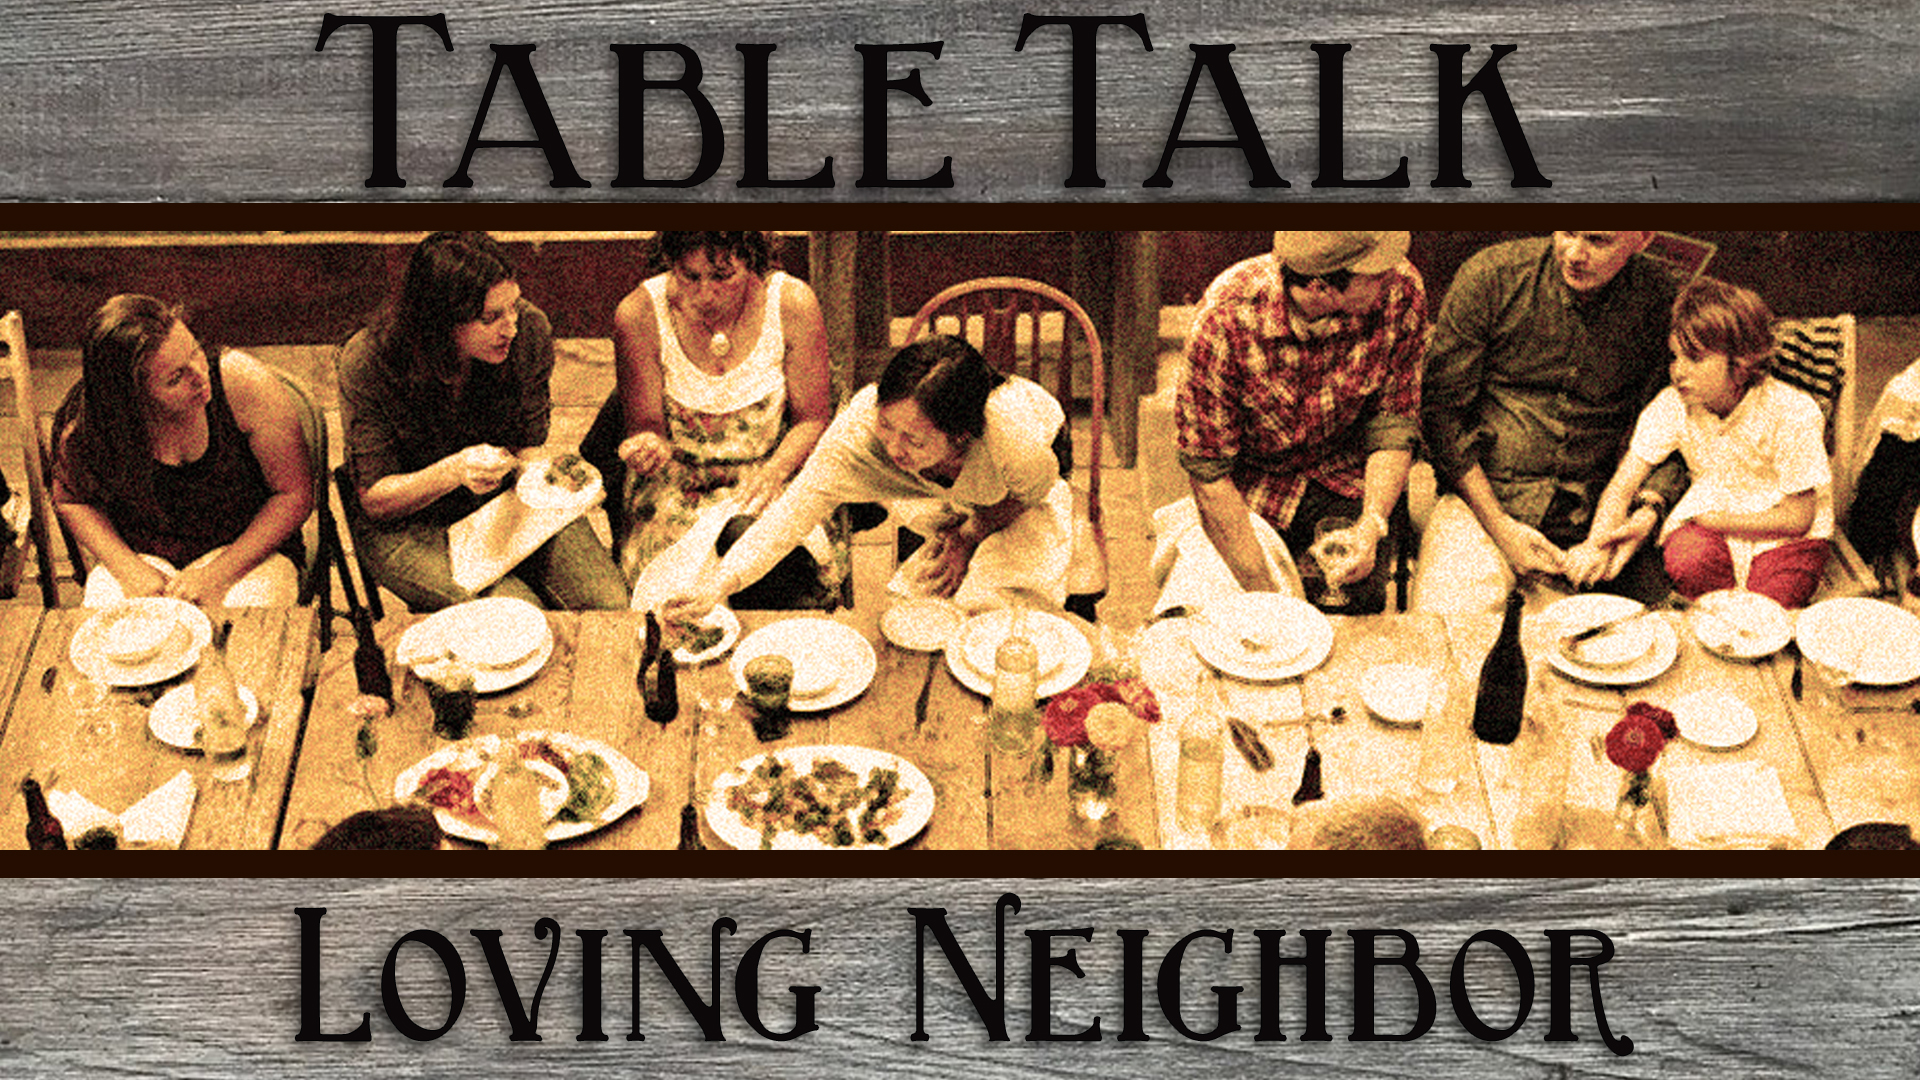 TableTalk_LovingNeighbor_SANCTUARY